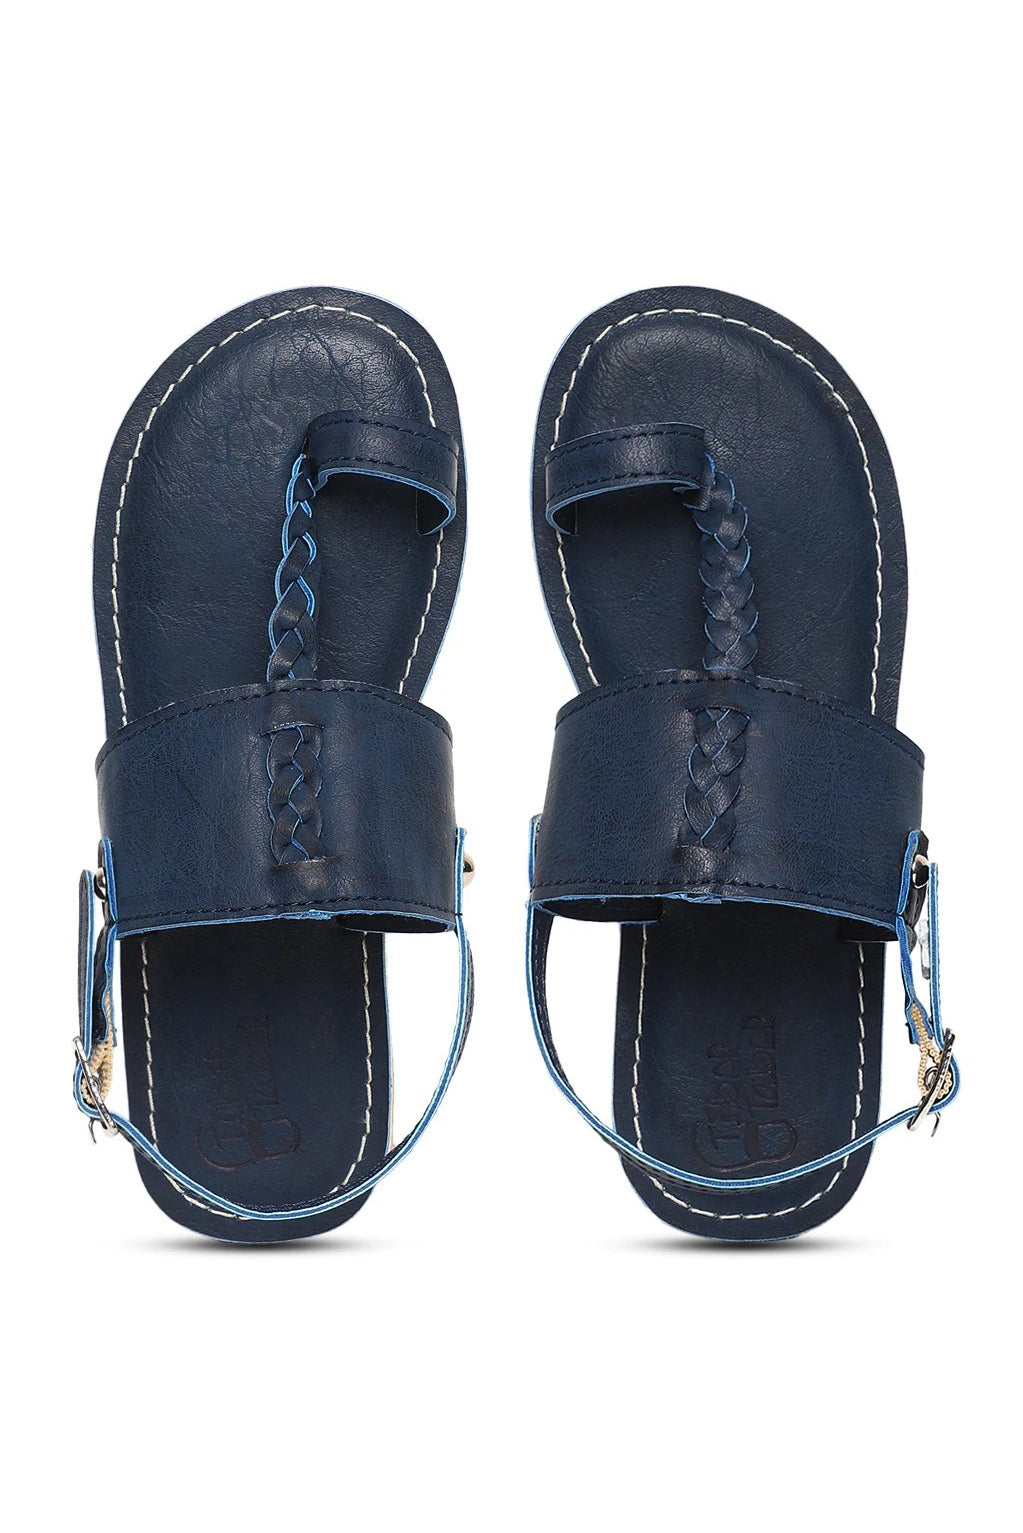 Boy Blue Braid Kohlapuri Sandal